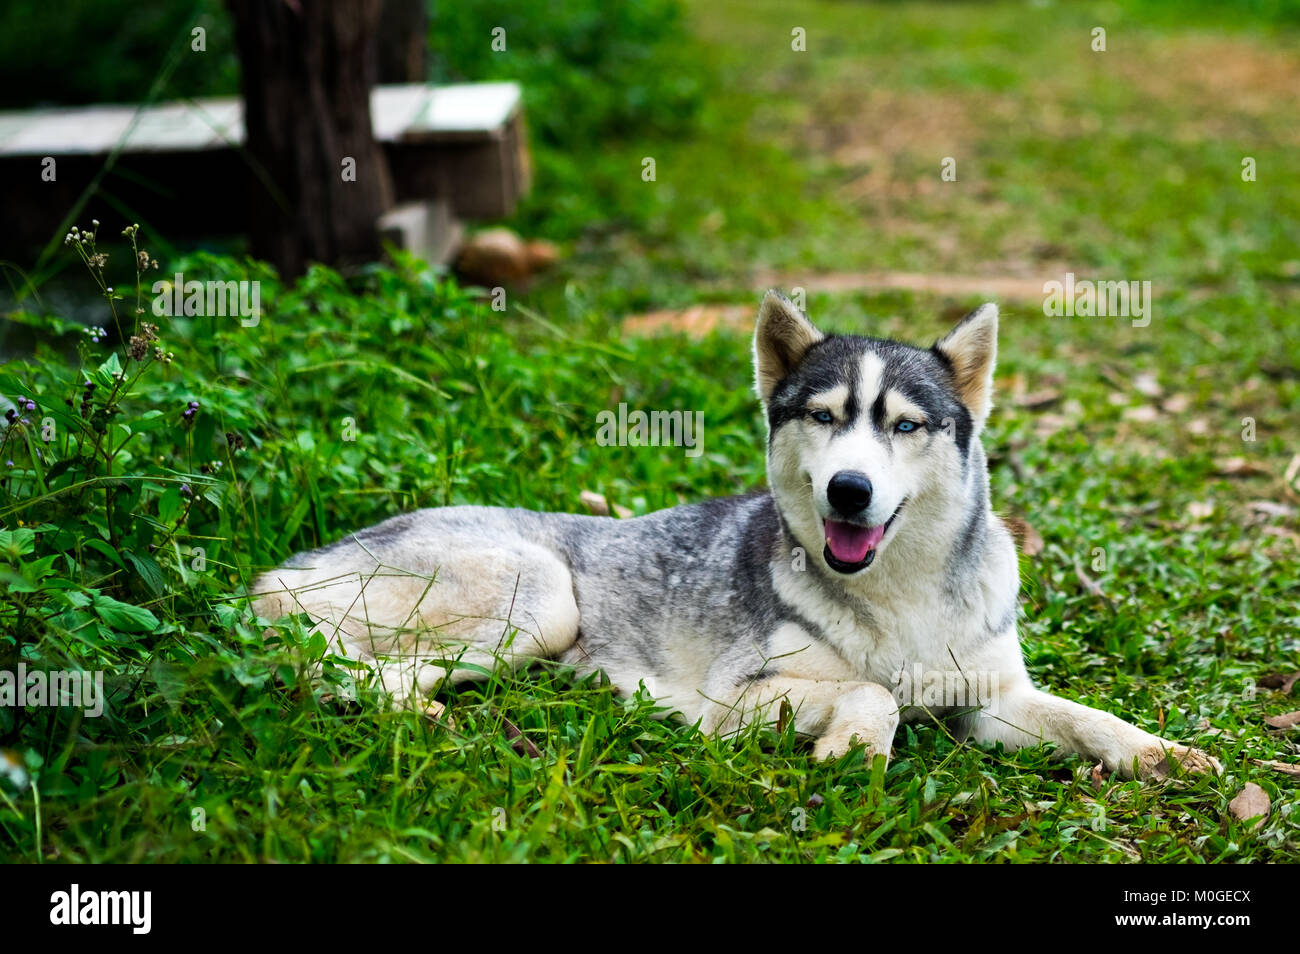 A little siberian husky sitting and take a look something with interest in the midst of nature, selective focus. - Stock Image